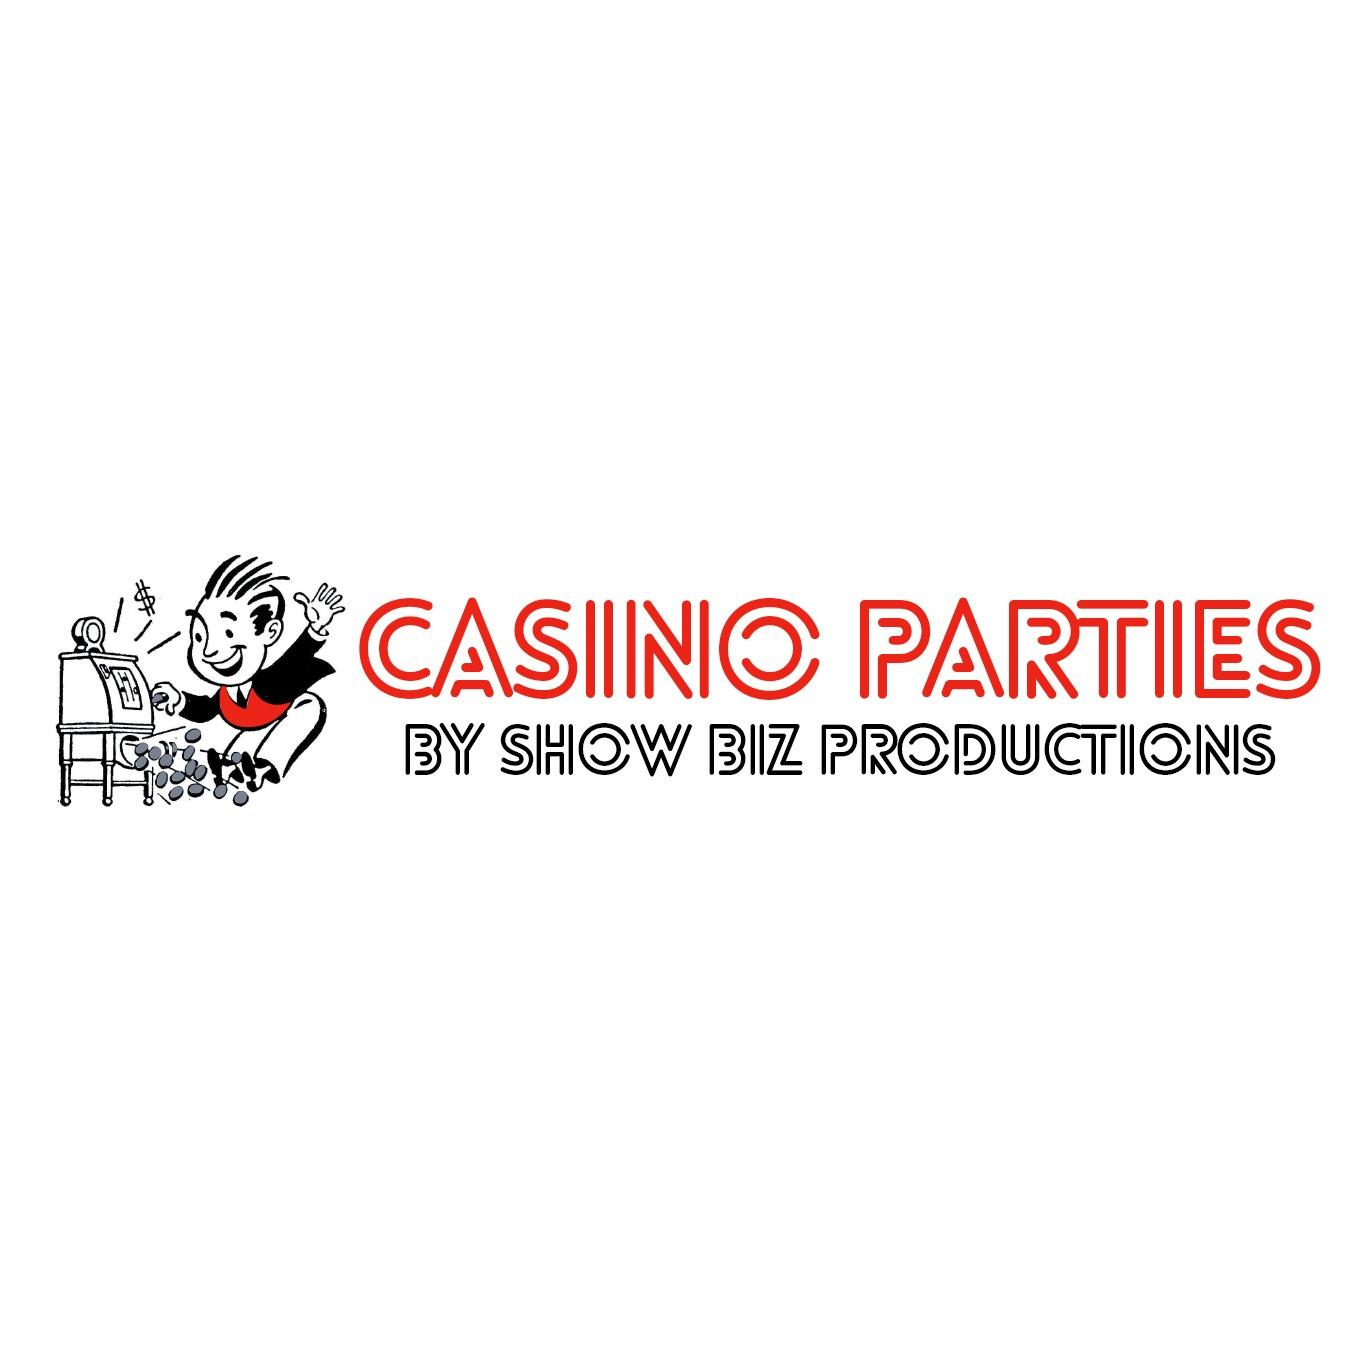 Casino Parties by Show Biz Productions Logo